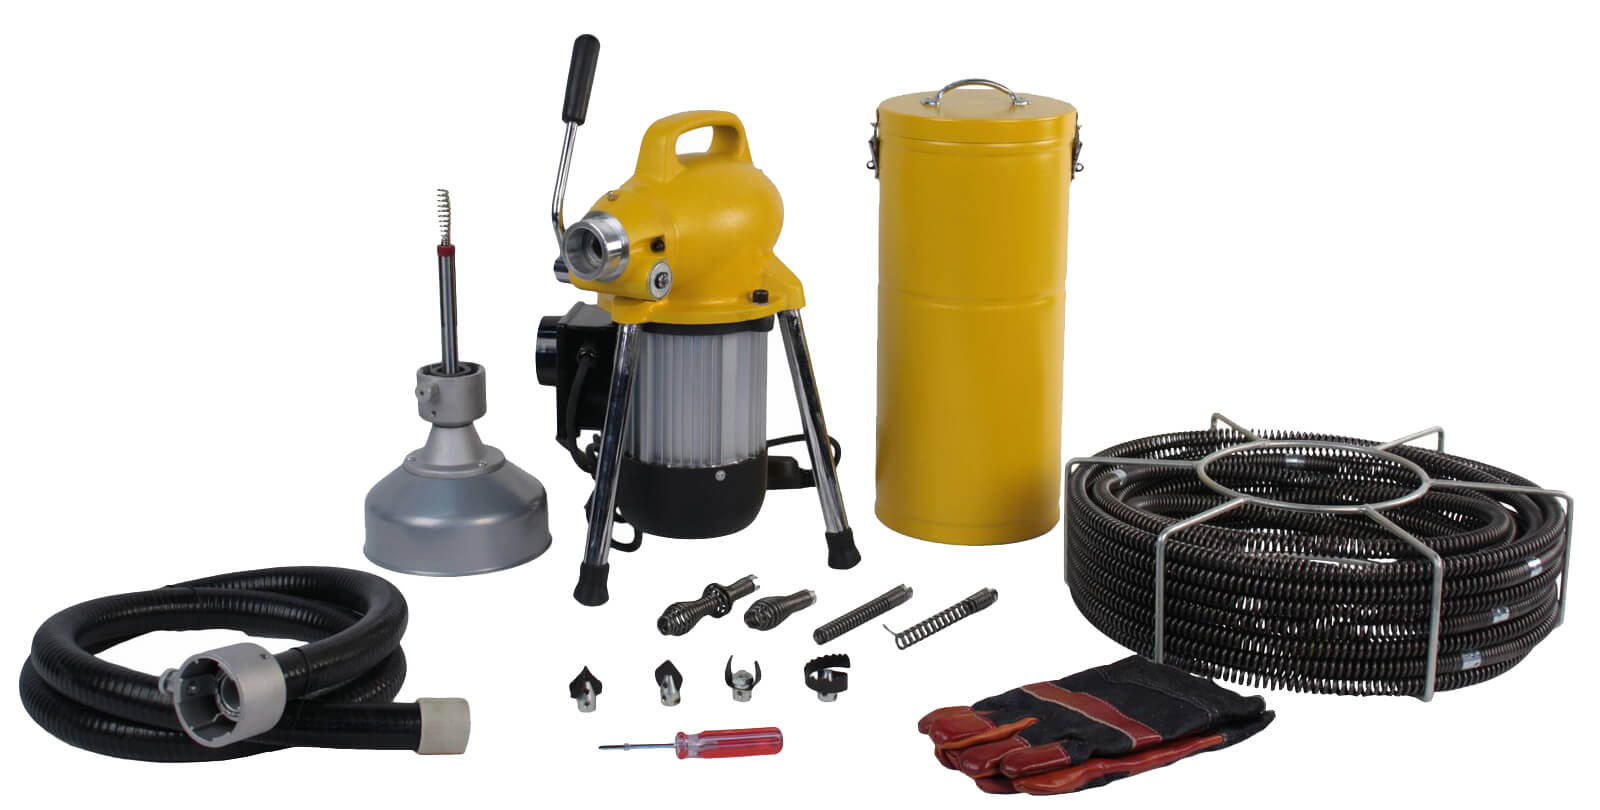 Essential Drain Cleaning Tools for Your Home